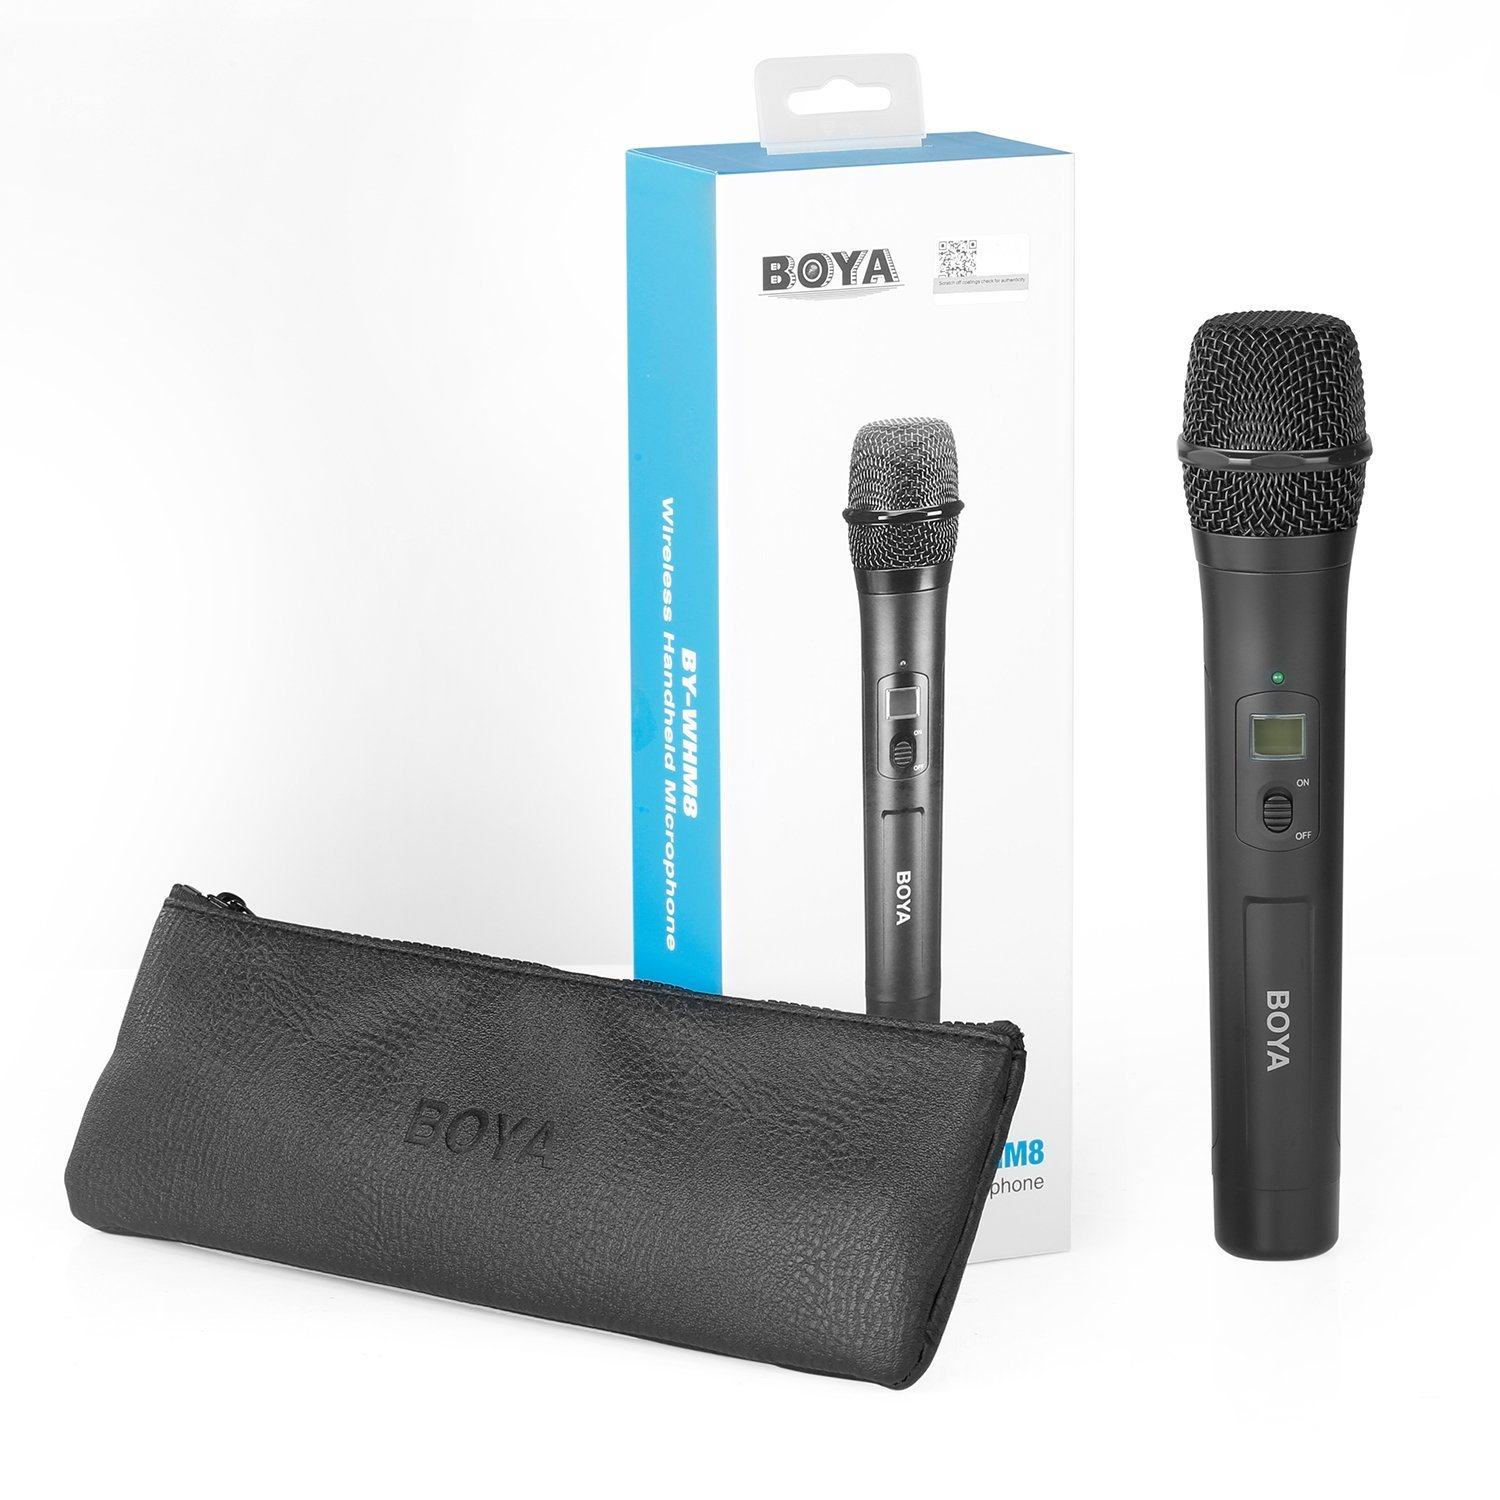 BOYA Microphone by-WHM8 Pro 48-Channel UHF Camera Wireless Handheld Microphone Dynamic Mic for Karaoke Interview Meeting Audio Recording Stage Singing Compatiable with BOYA by-WM8 //by-WM6 Receiver